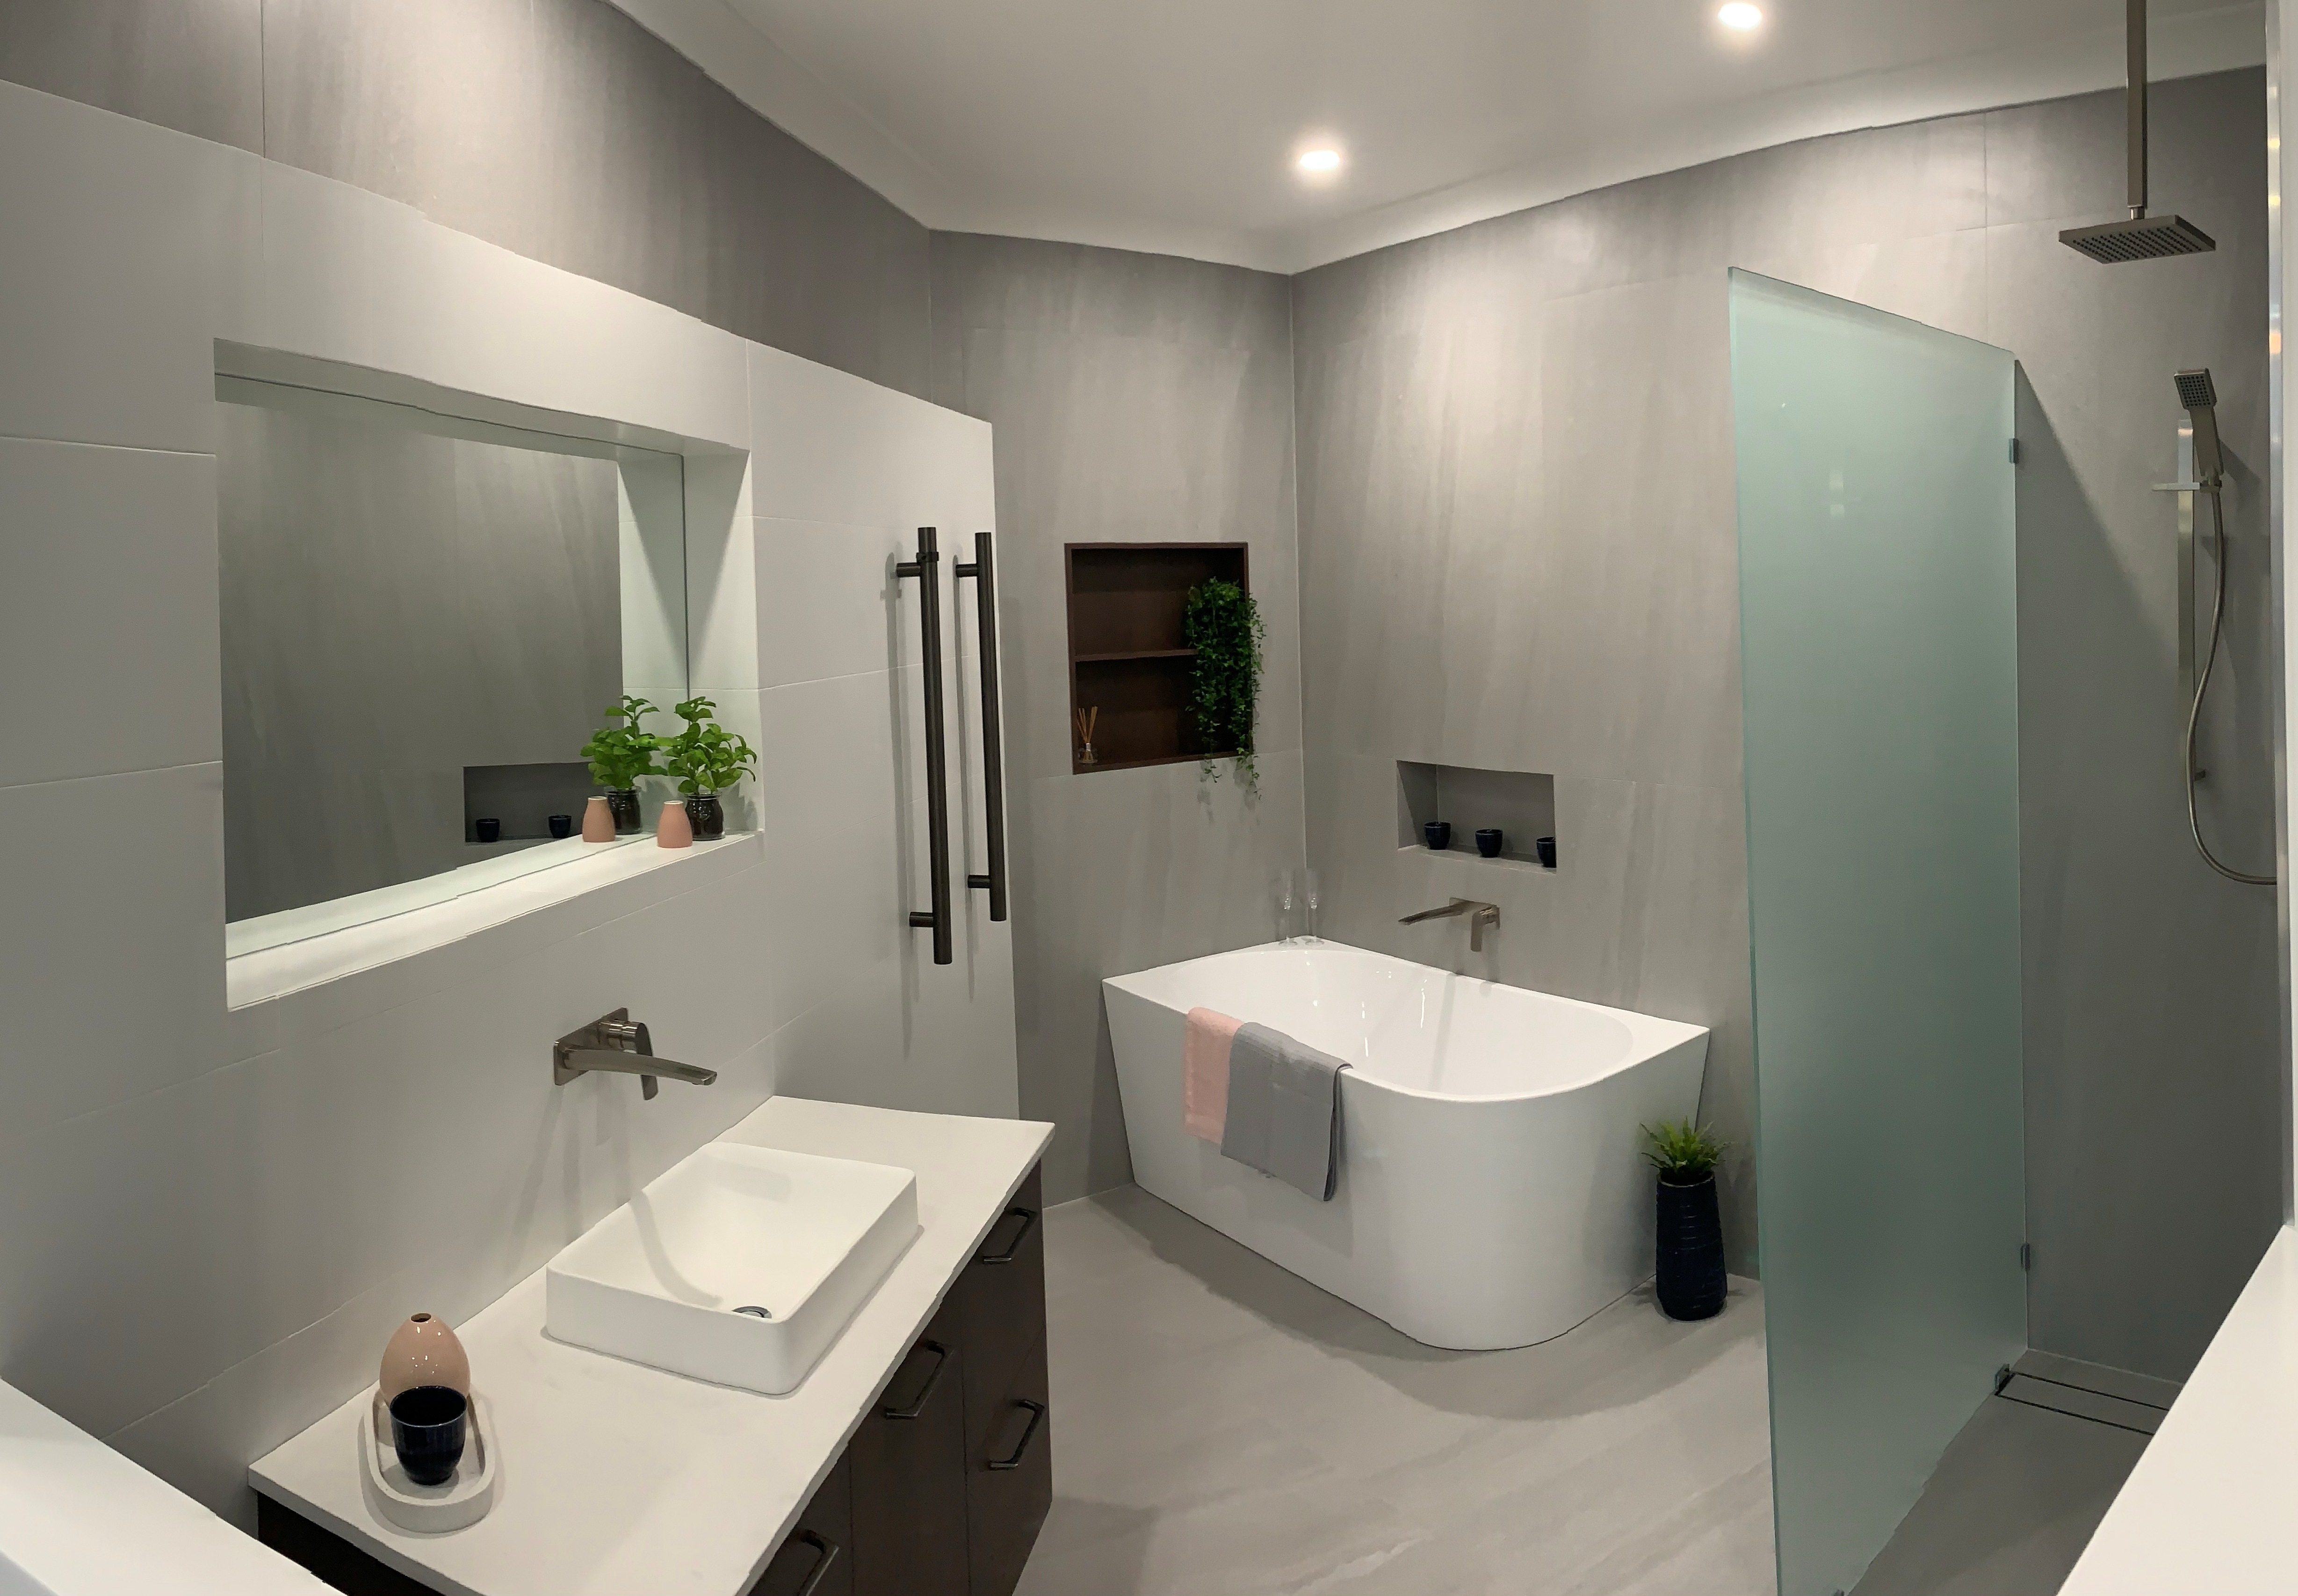 Large open plan bathroom with light brown cabinets.